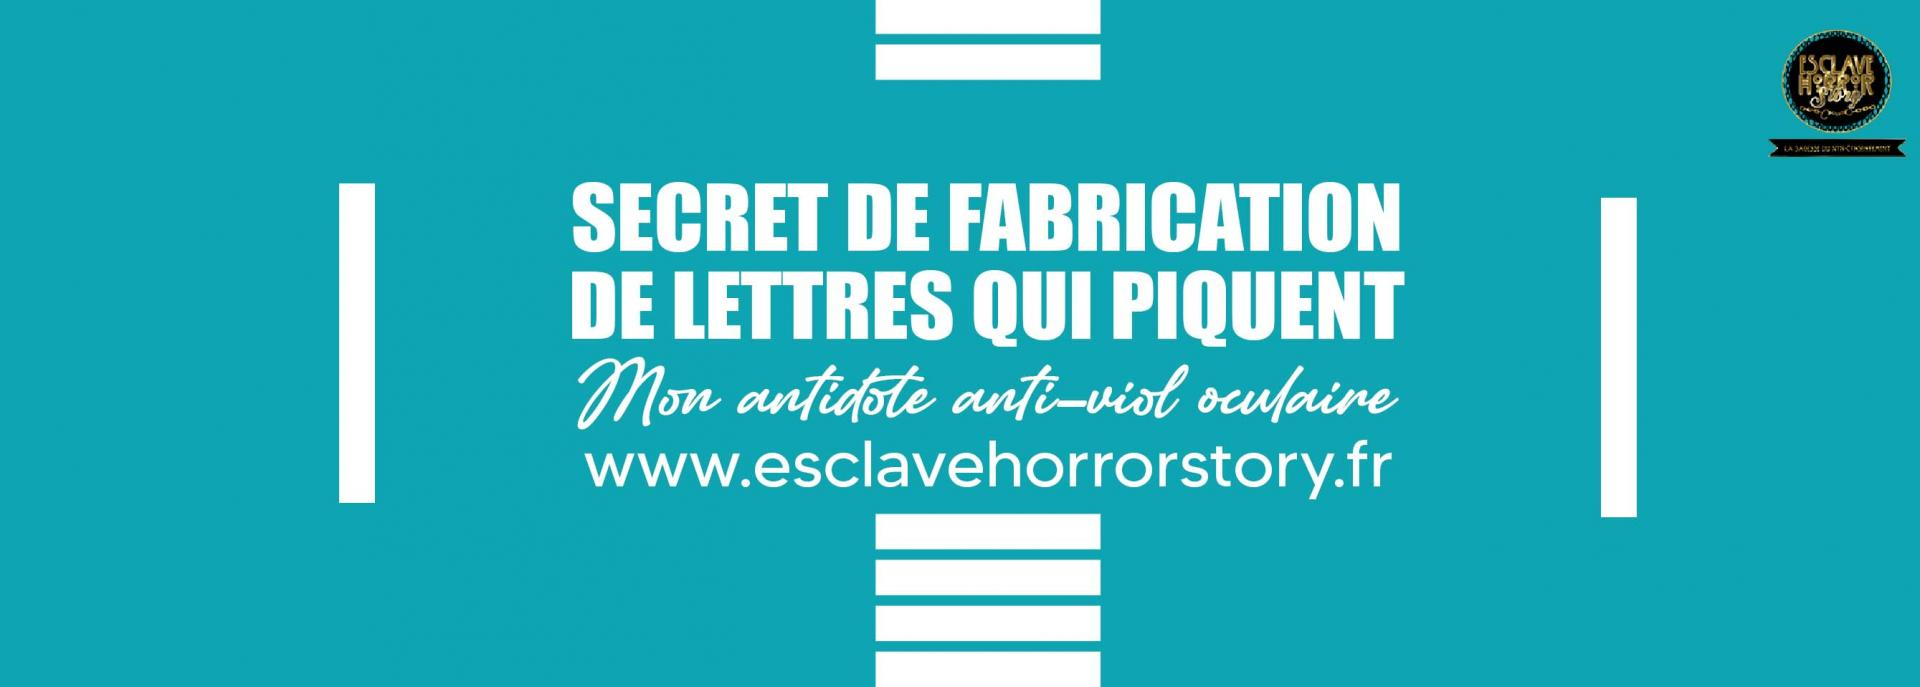 Banniere site secret de fabrication de lettres qui piquent